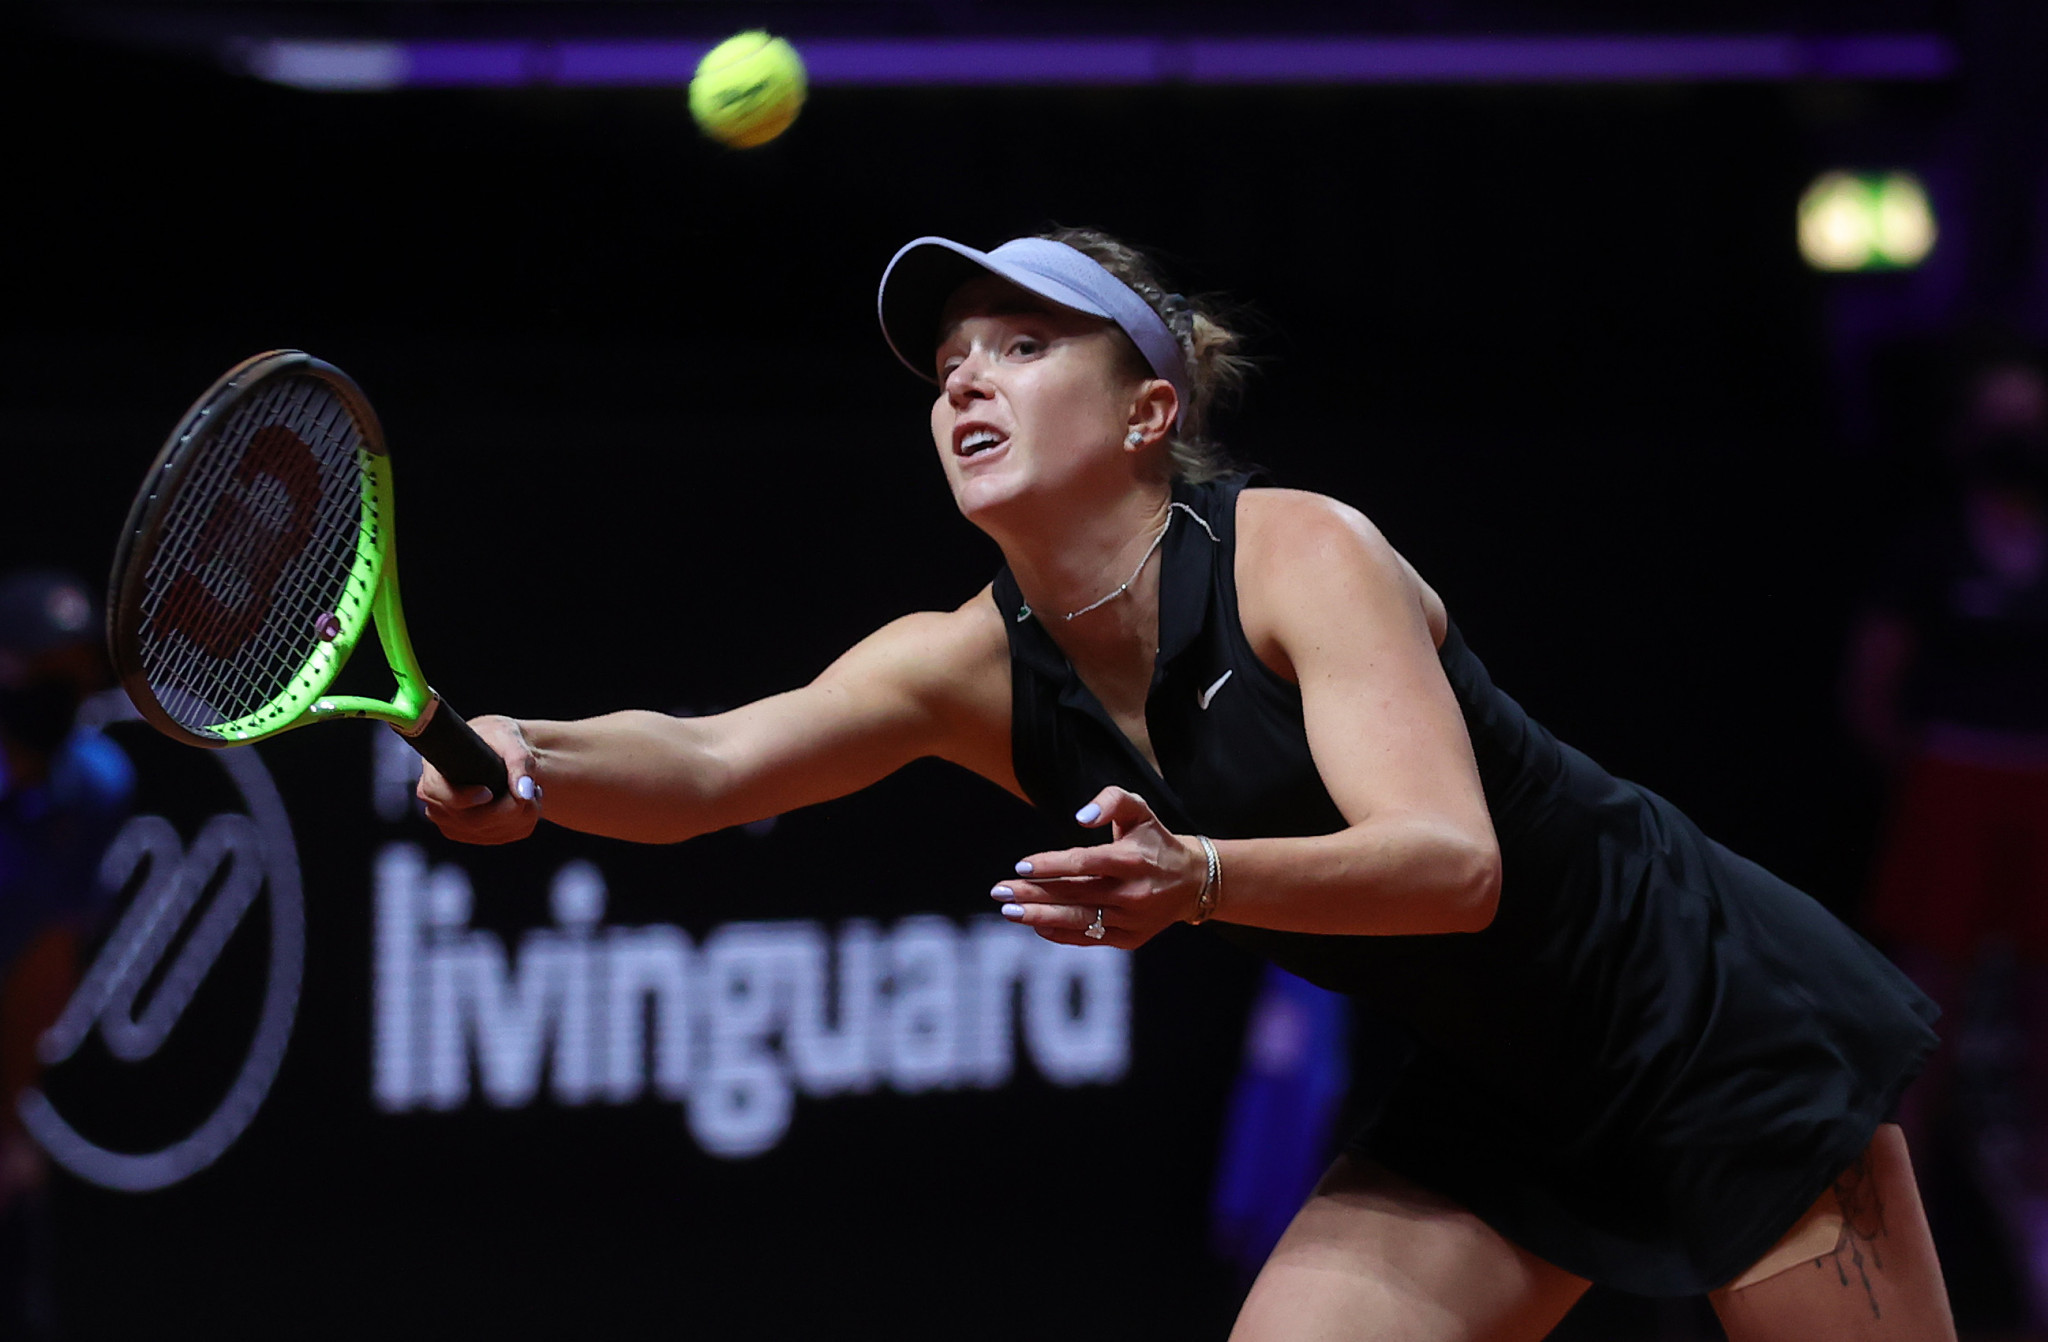 Elina Svitolina suffered a shock opening-round defeat to Jil Teichmann ©Getty Images